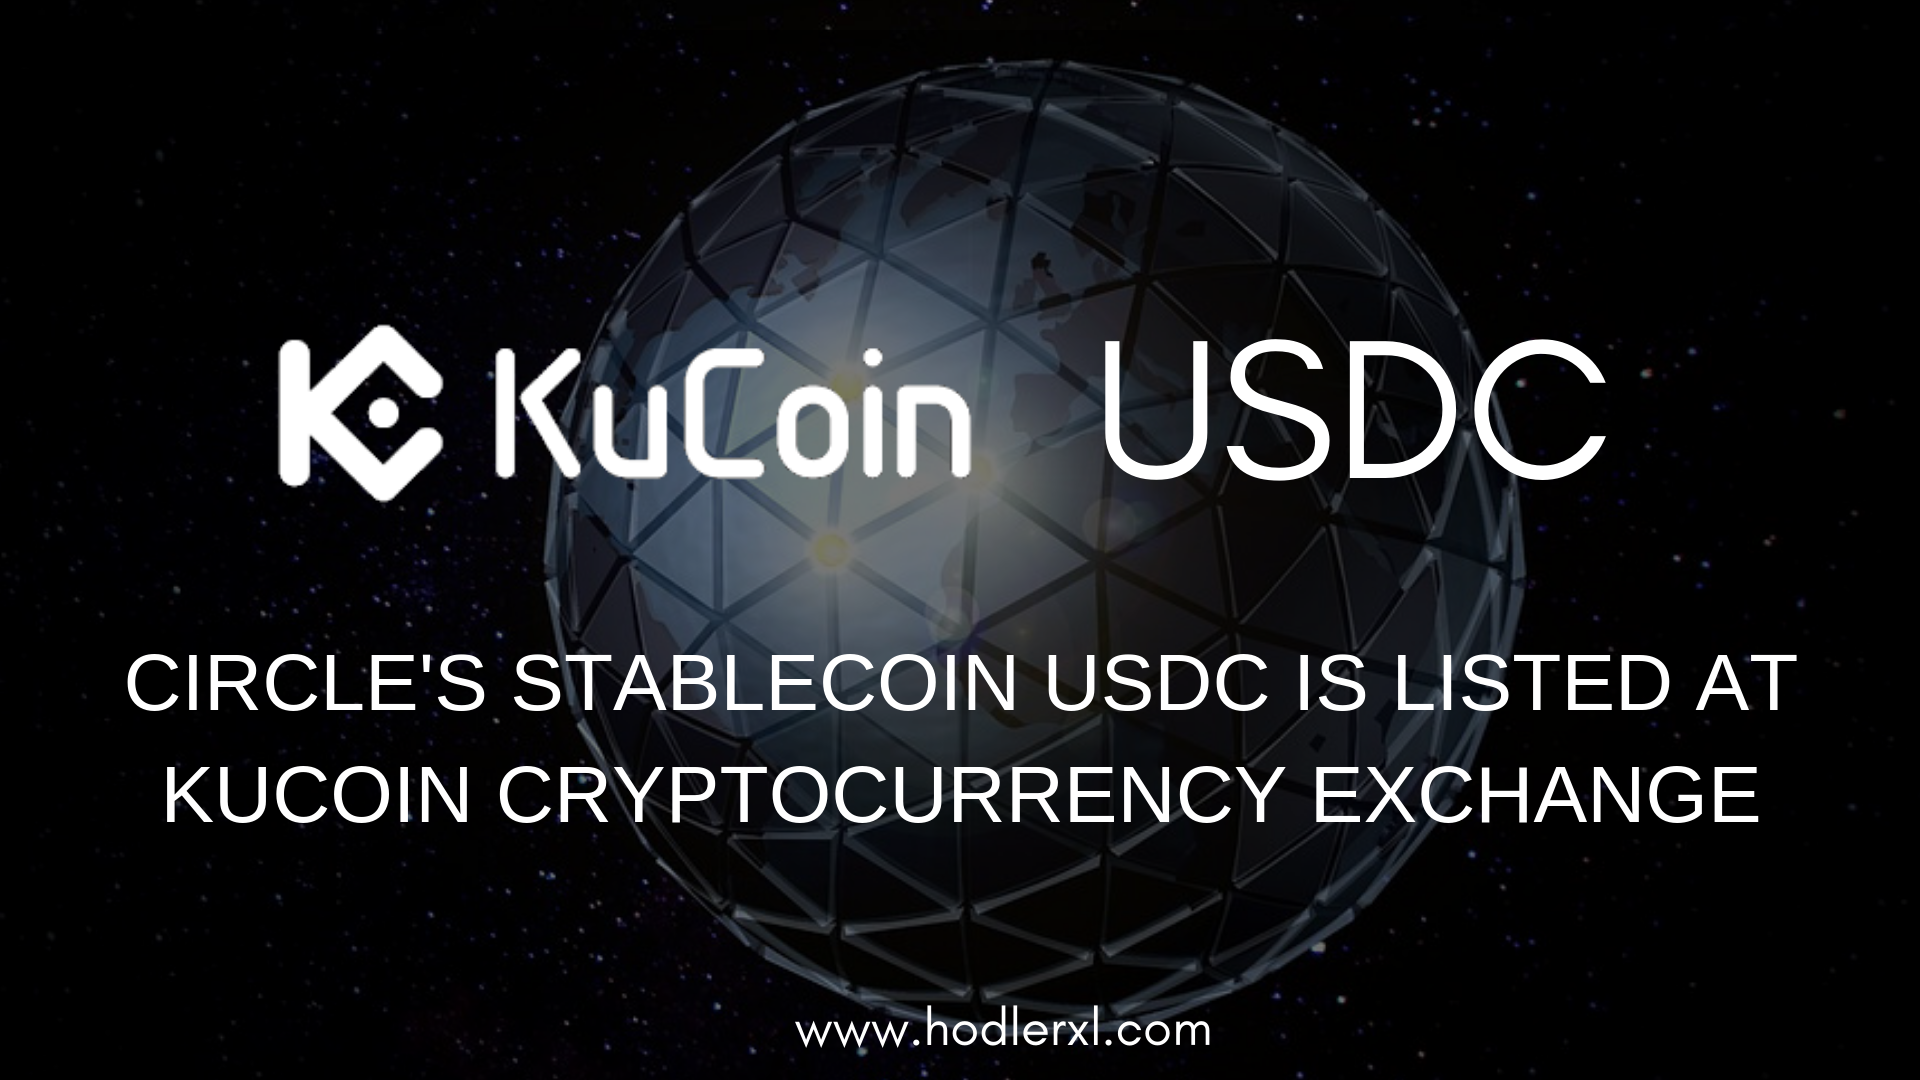 Circle's Stablecoin USDC Is Listed At KuCoin Cryptocurrency Exchange